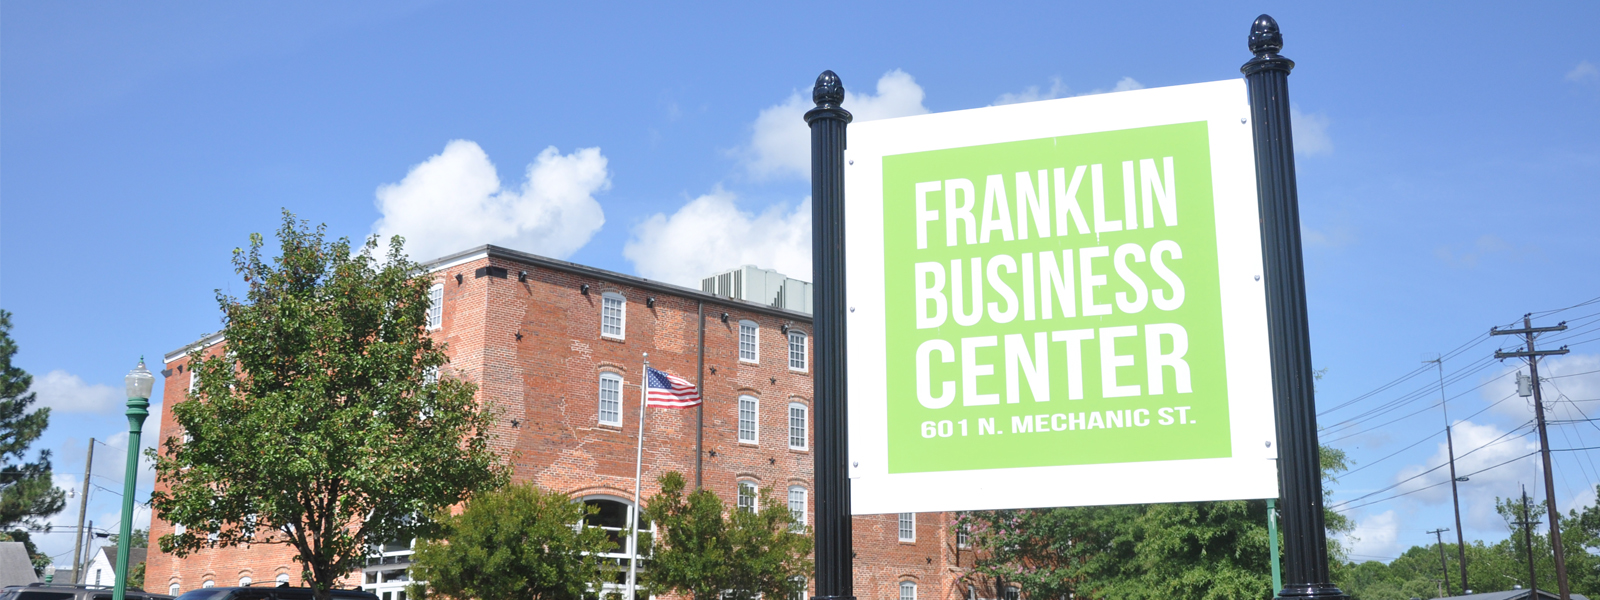 Picture of Franklin Business Center